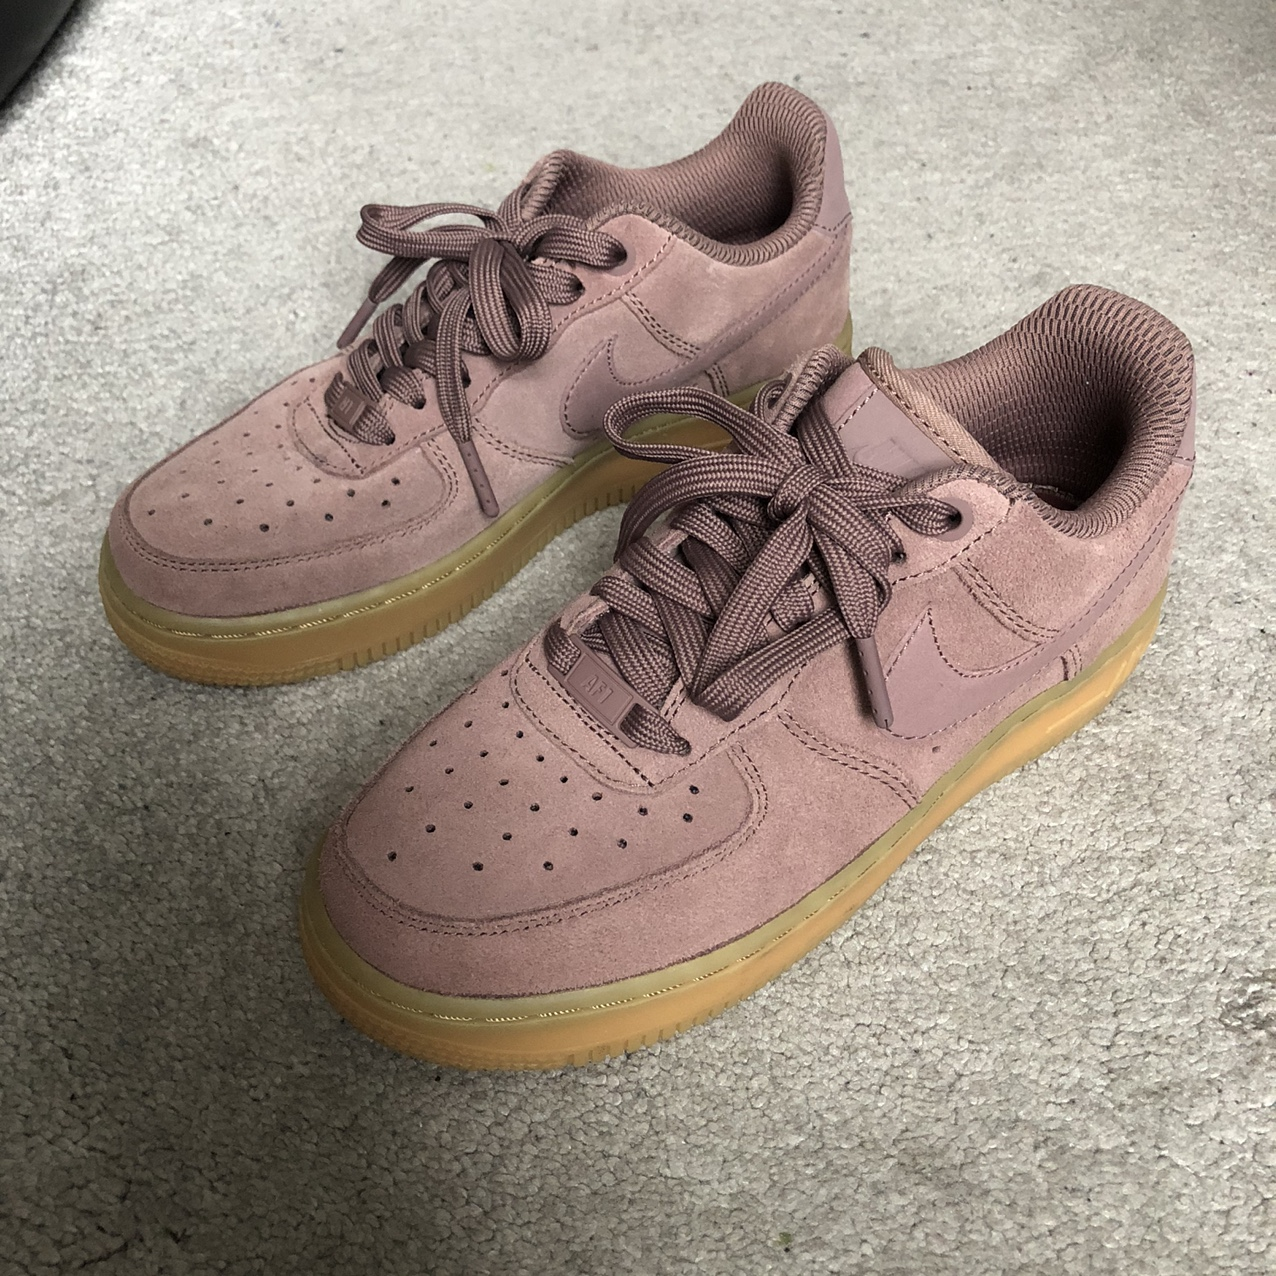 NIKE AIR FORCE 1 SUEDE IN SMOKEY MAUVE WITH GUM... - Depop